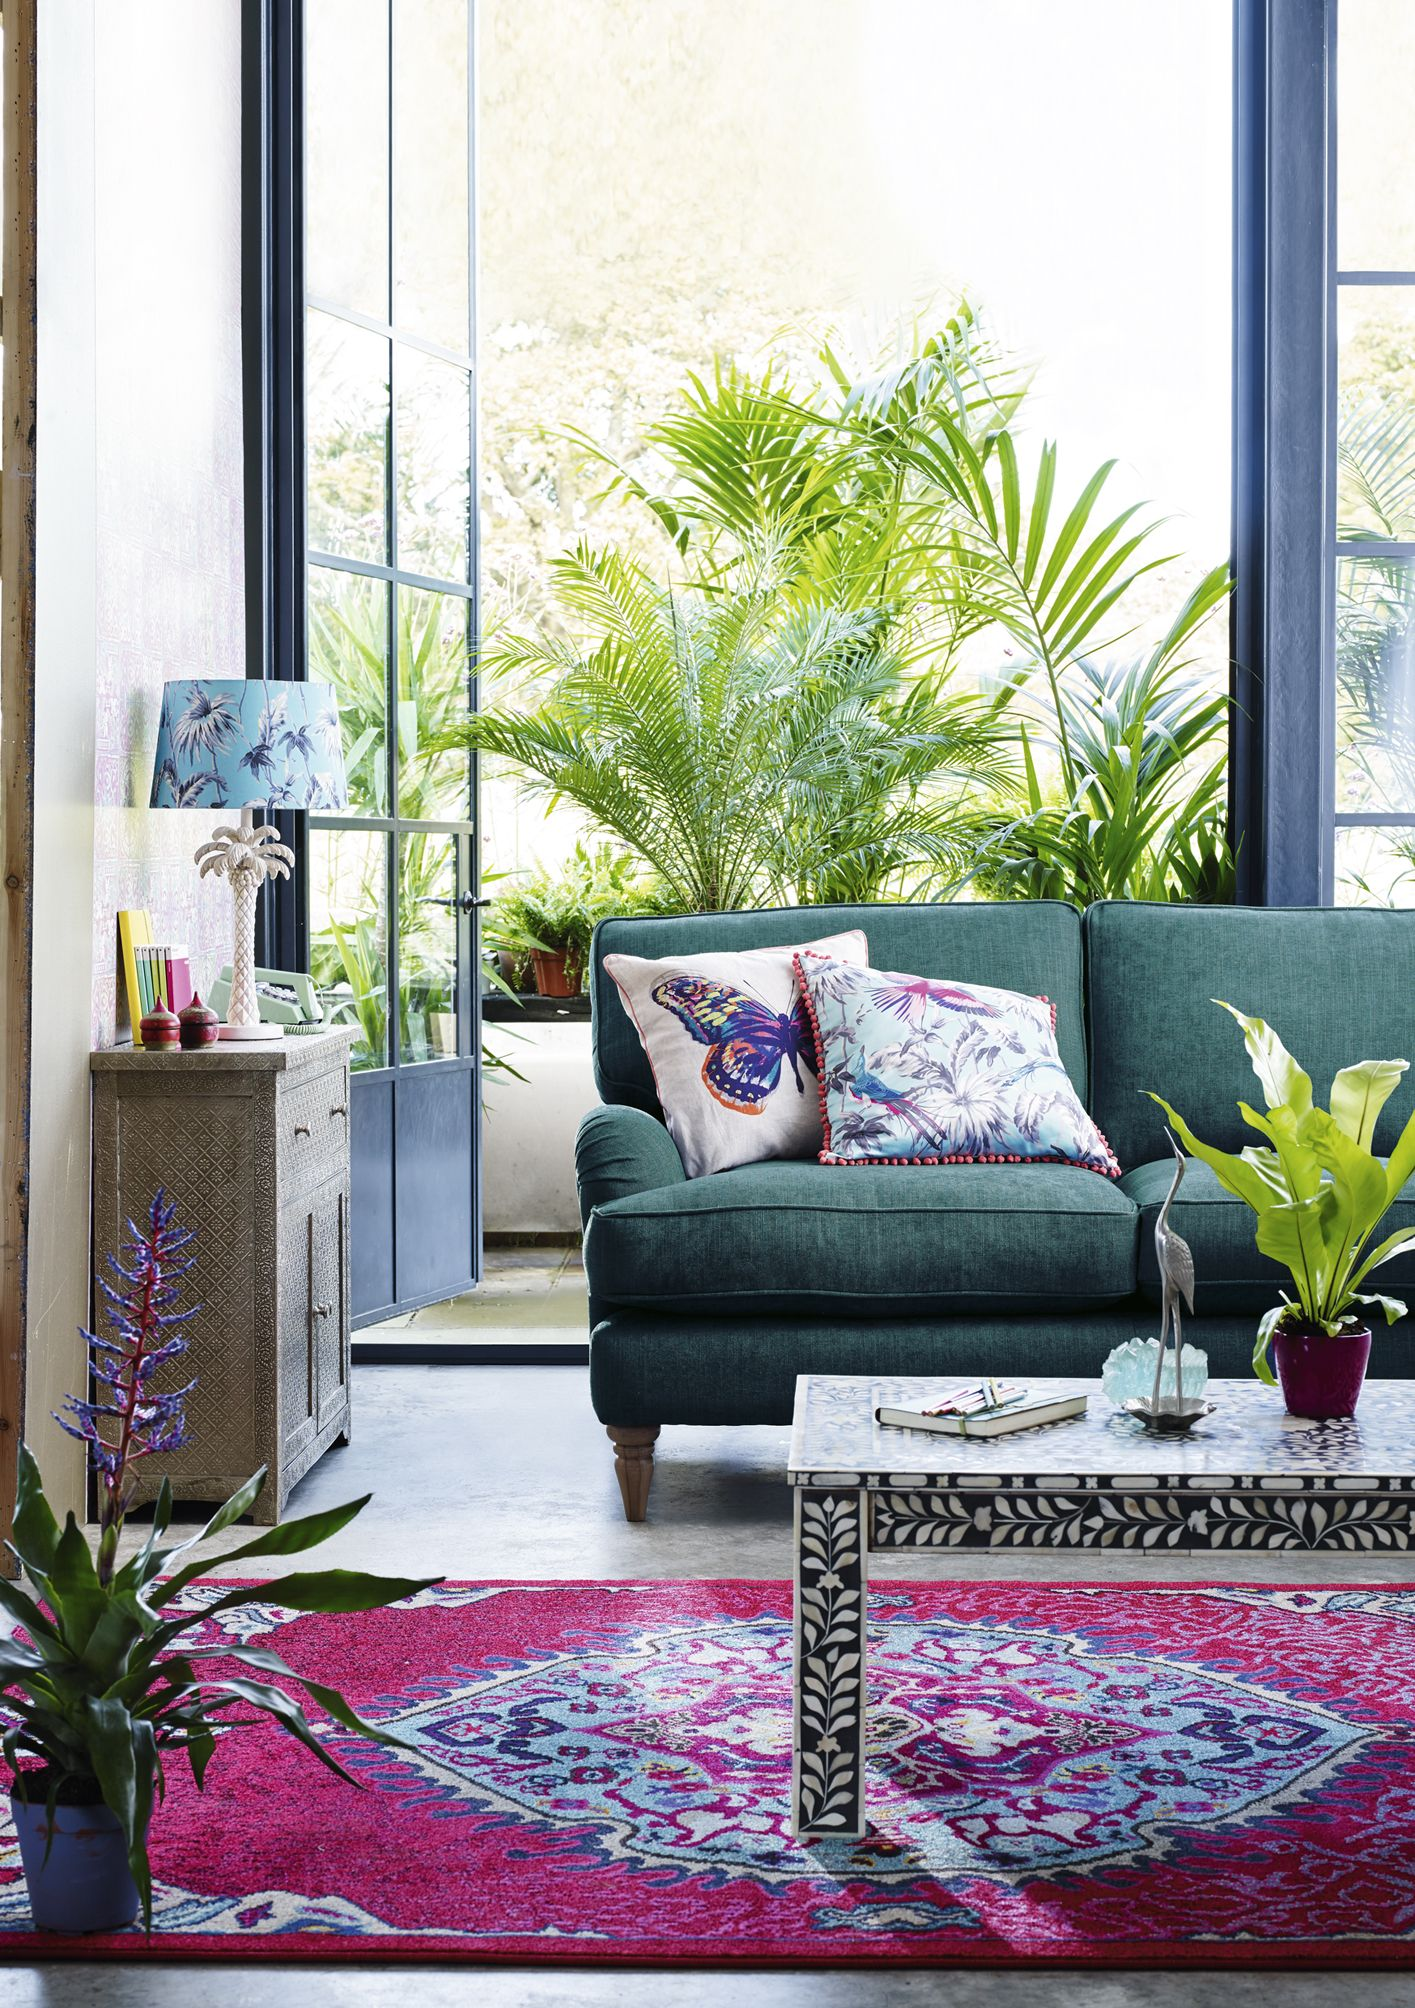 Go Modern Rio With Statement Gl Vases Palm Tree Lighting And Delicate Hand Embellished Cushions From Erfly Home By Matthew Williamson Matchmade